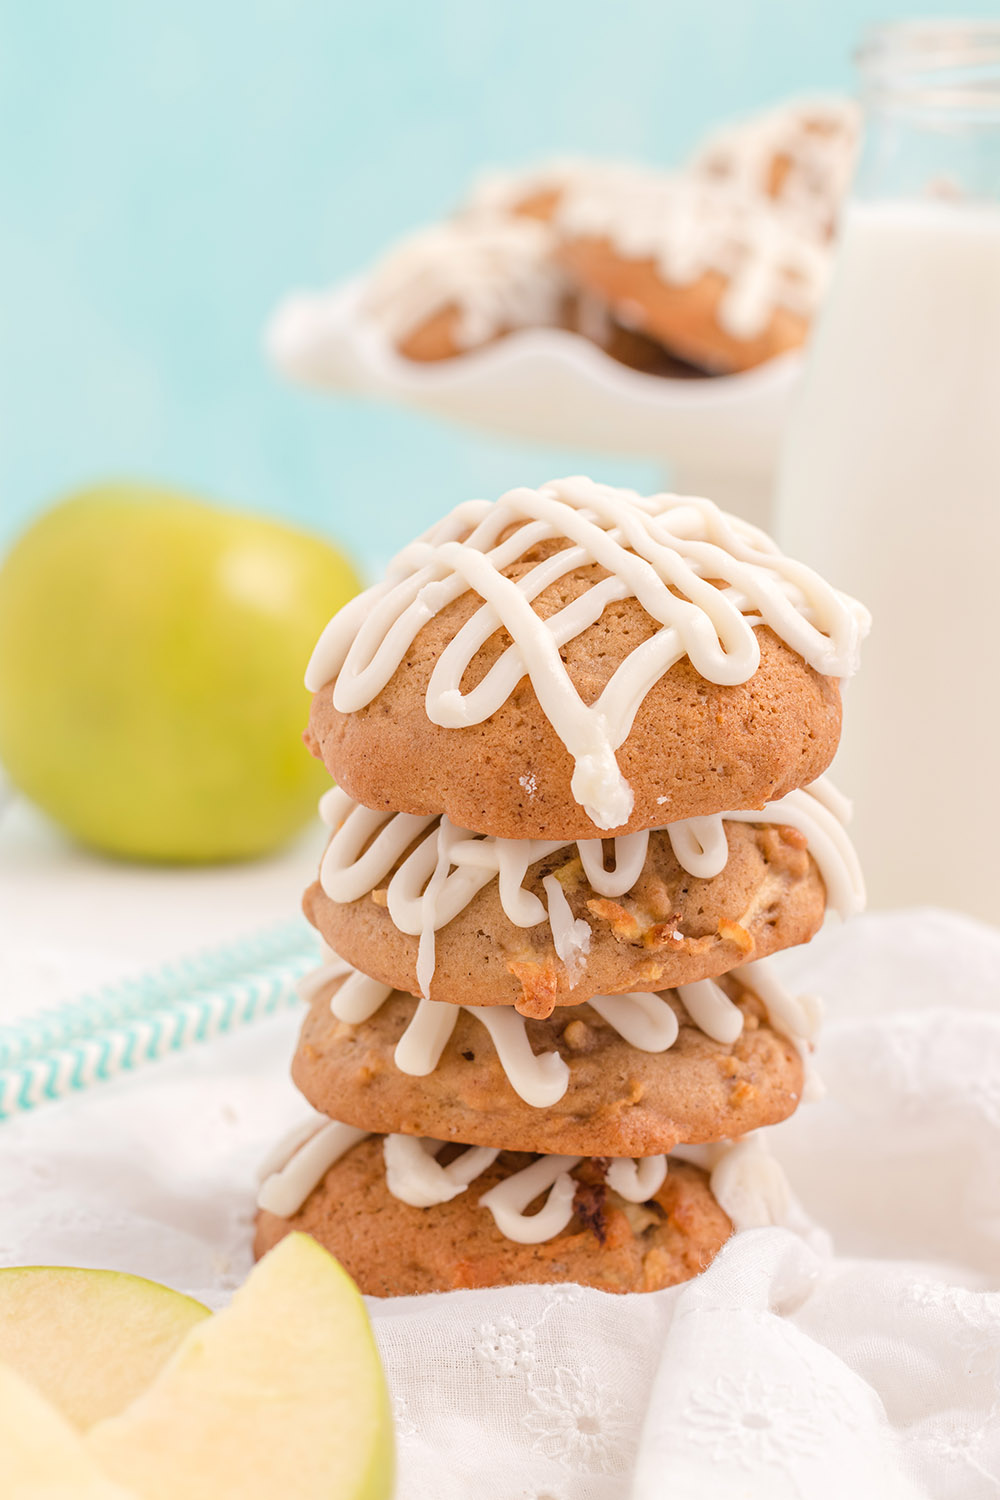 Stacked apple cookies with glaze and an apple in the background.